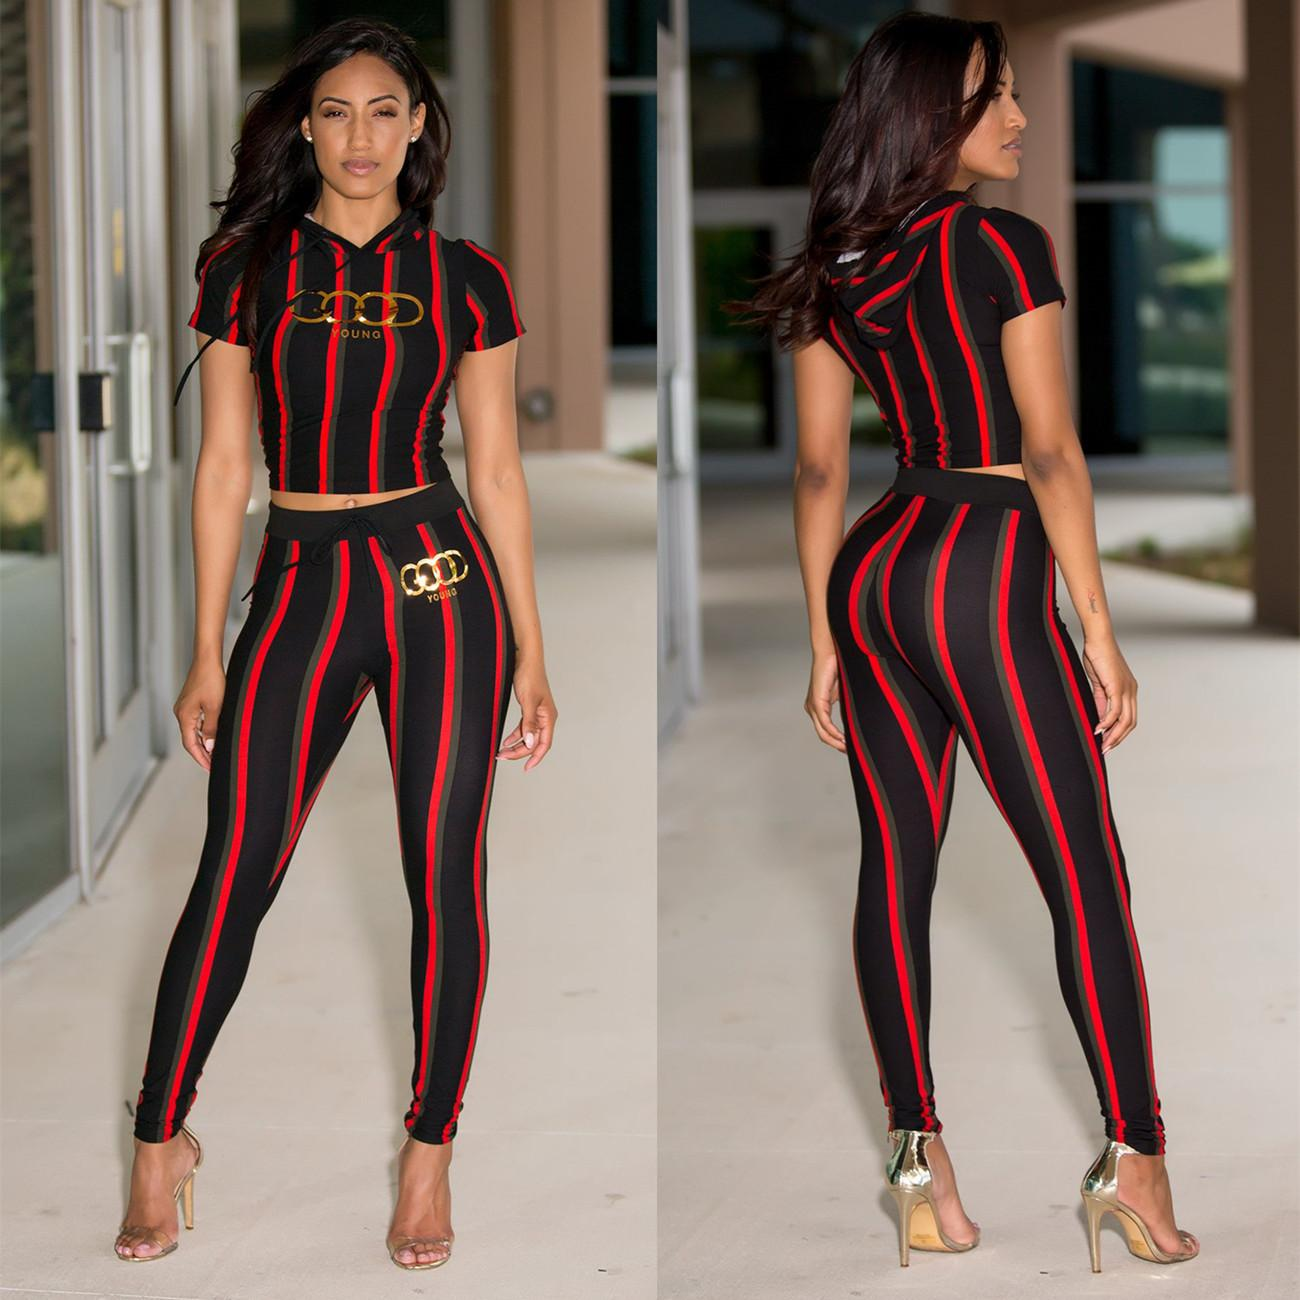 593297c66a4 2019 S 3XL Plus Size Women Clothing Pink Fashion Sexy Women'S Stripes Print,  Victoria Hot Gold Letters, Short Sleeves + Trousers Secret Suit From  Sup555, ...